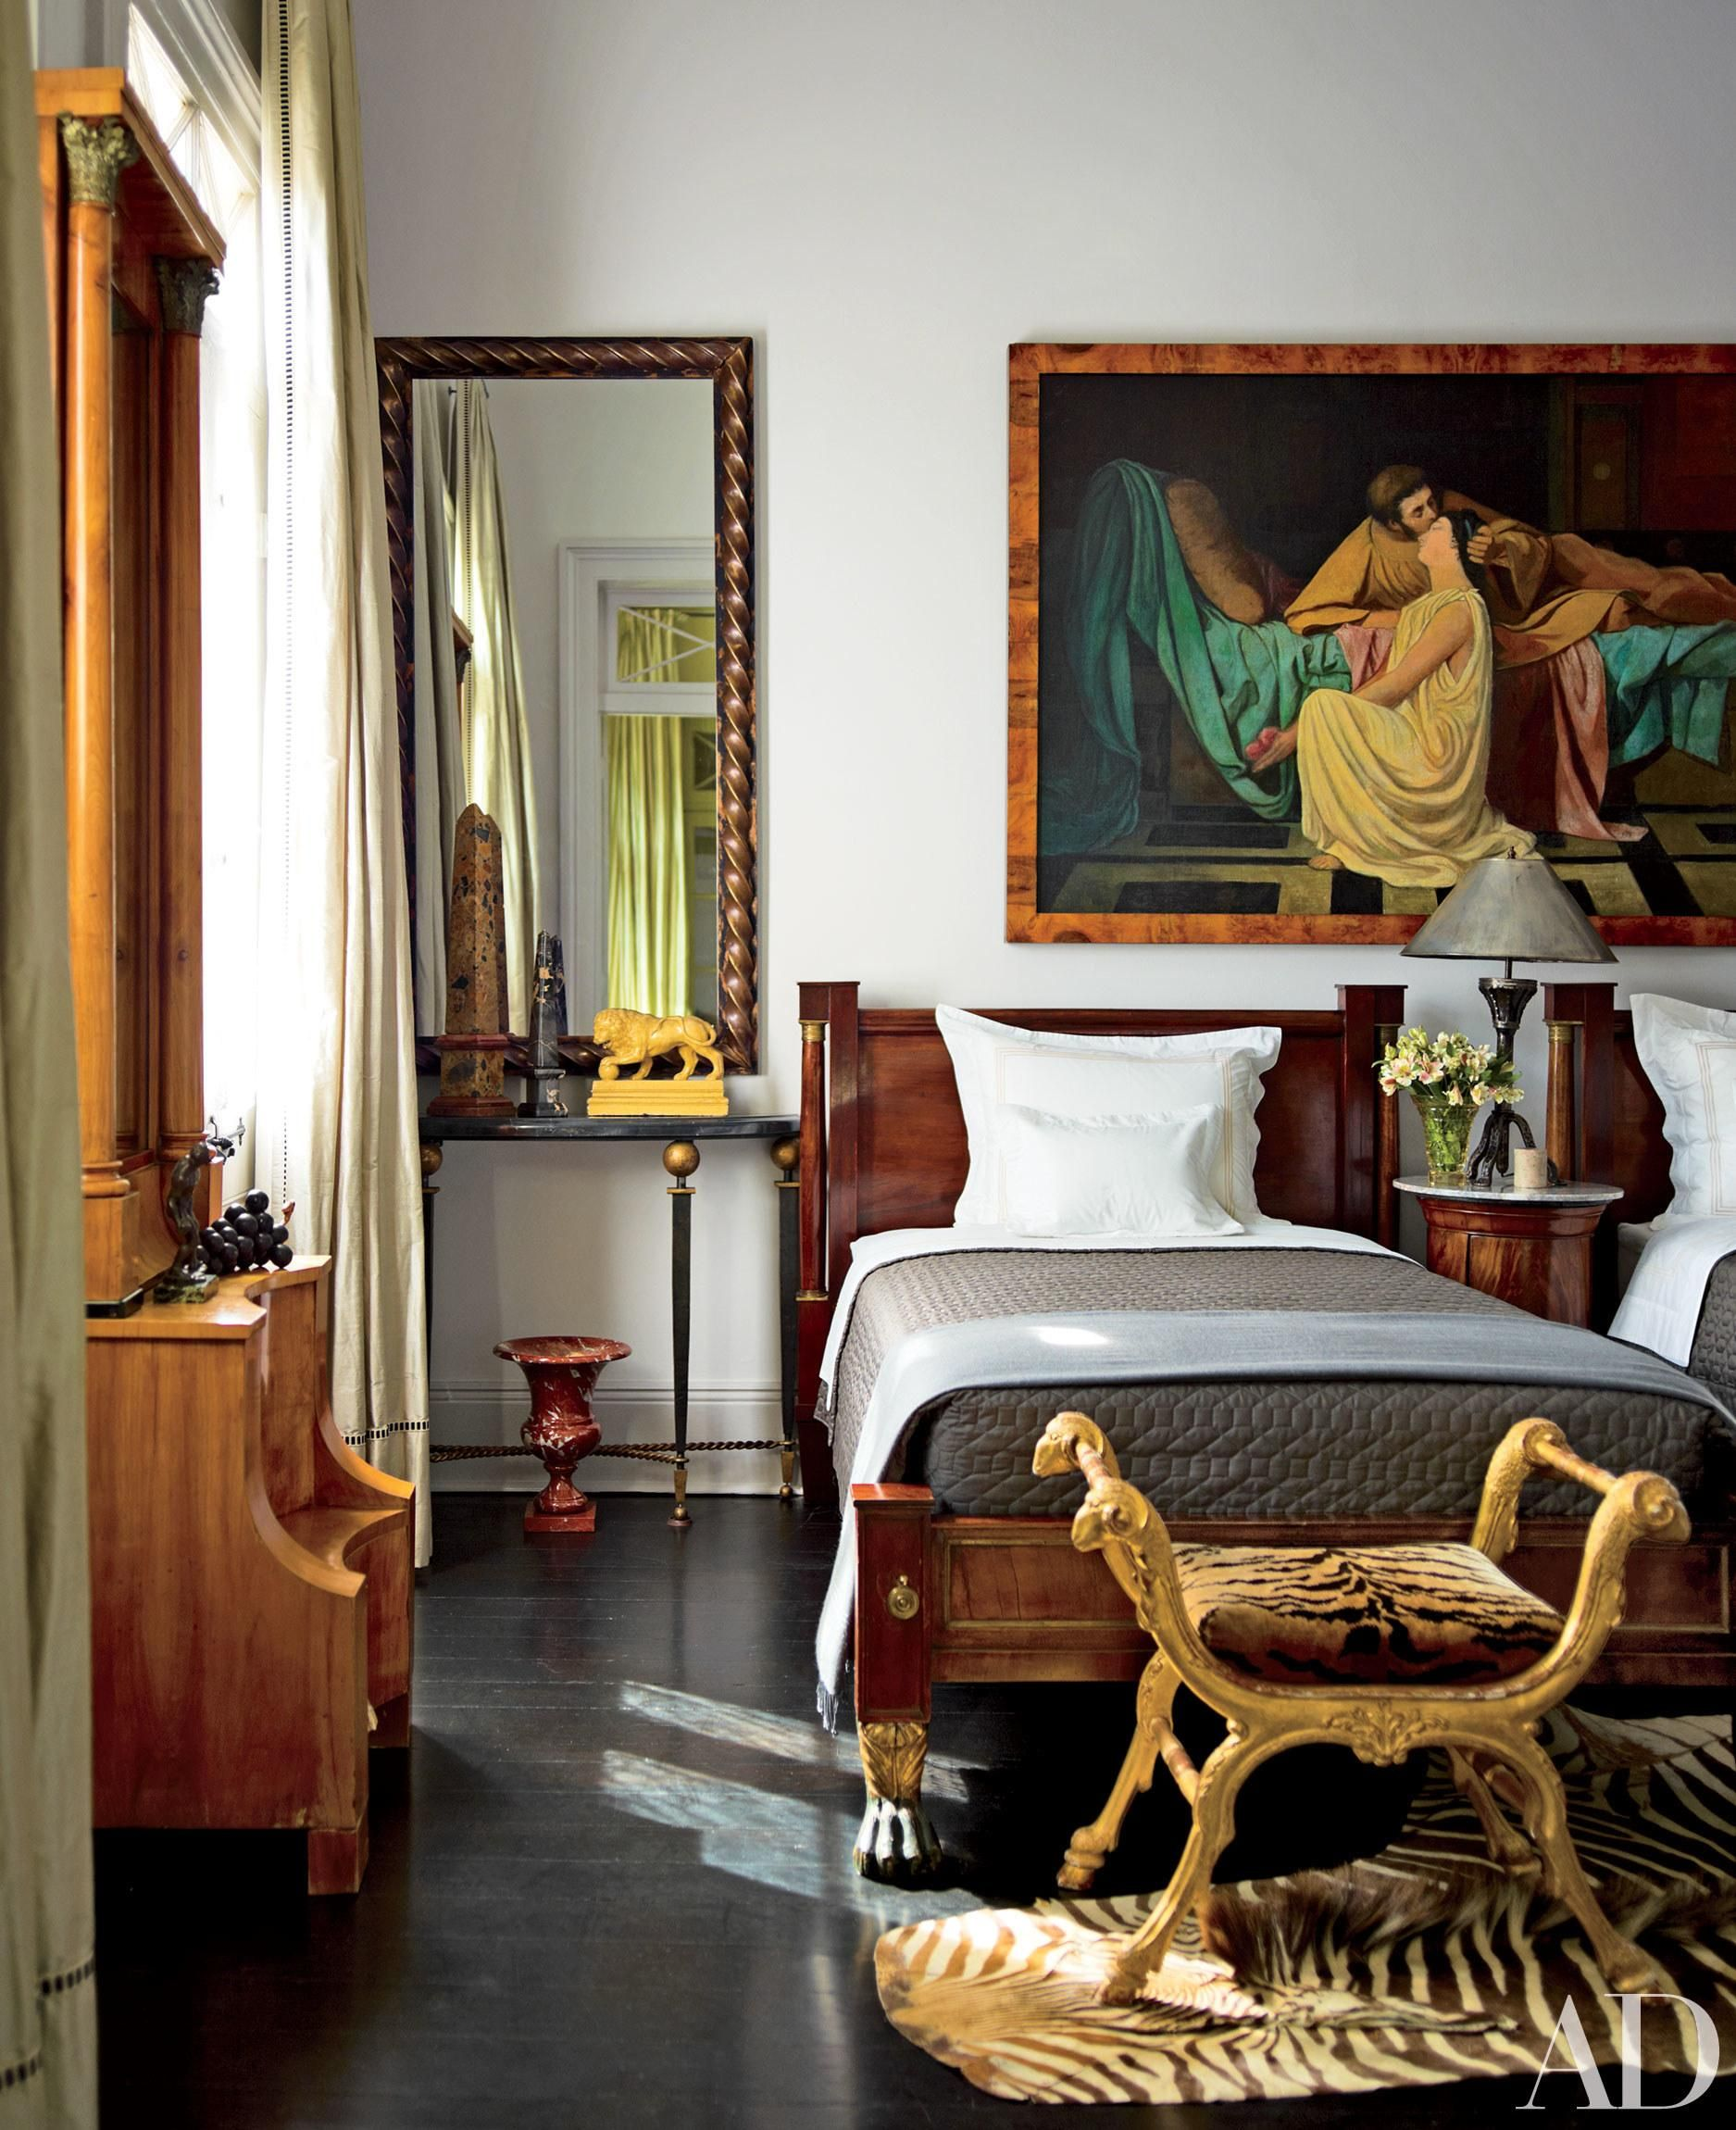 21 Warm And Welcoming Guest Room Ideas Modern Guest Bedroom Traditional Bedroom Home Decor